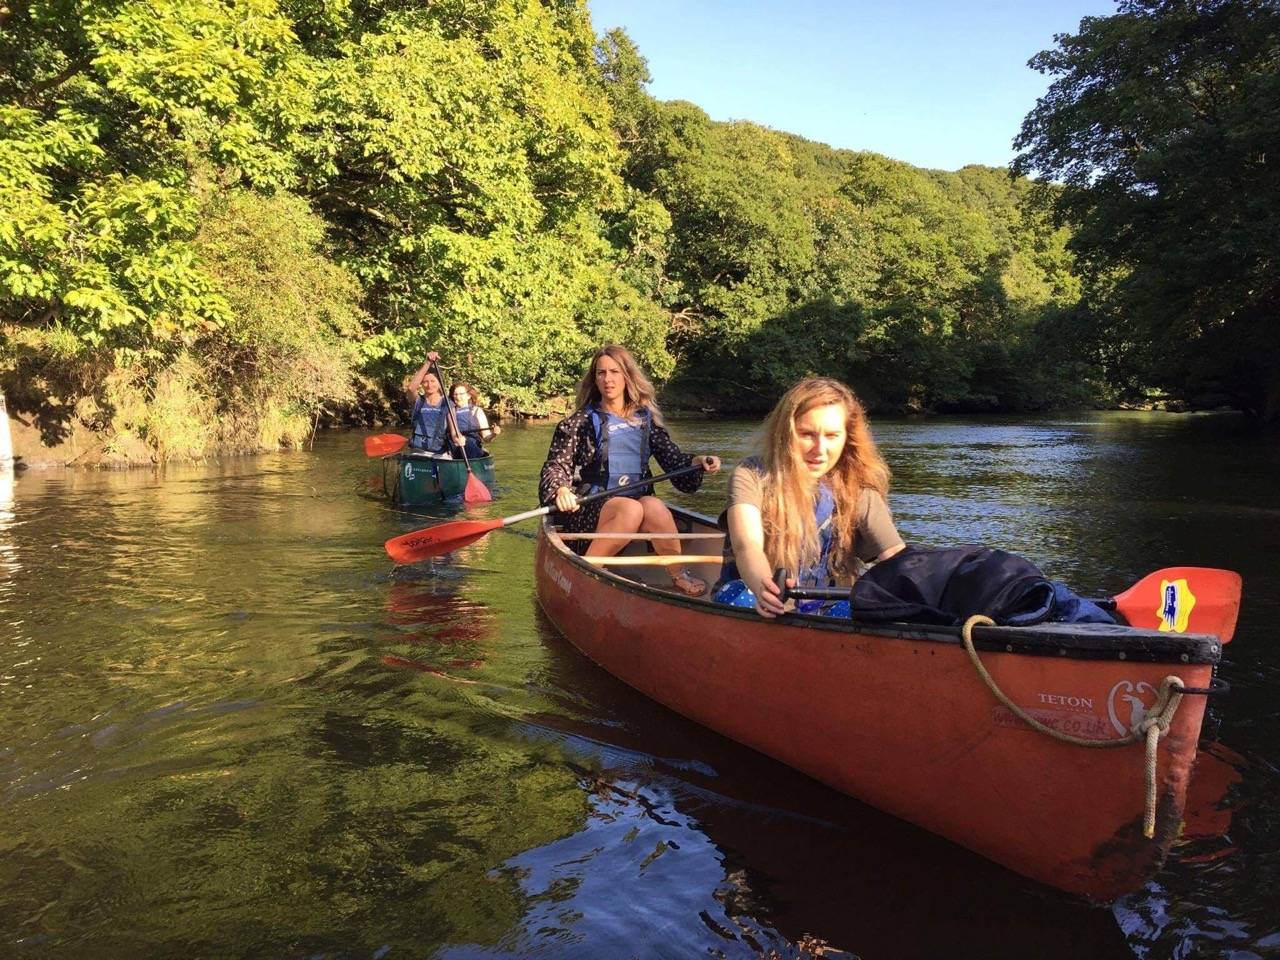 Go canoeing on the river Teifi and see if you can spot otters, red kites, salmon, kingfishers and even red deer